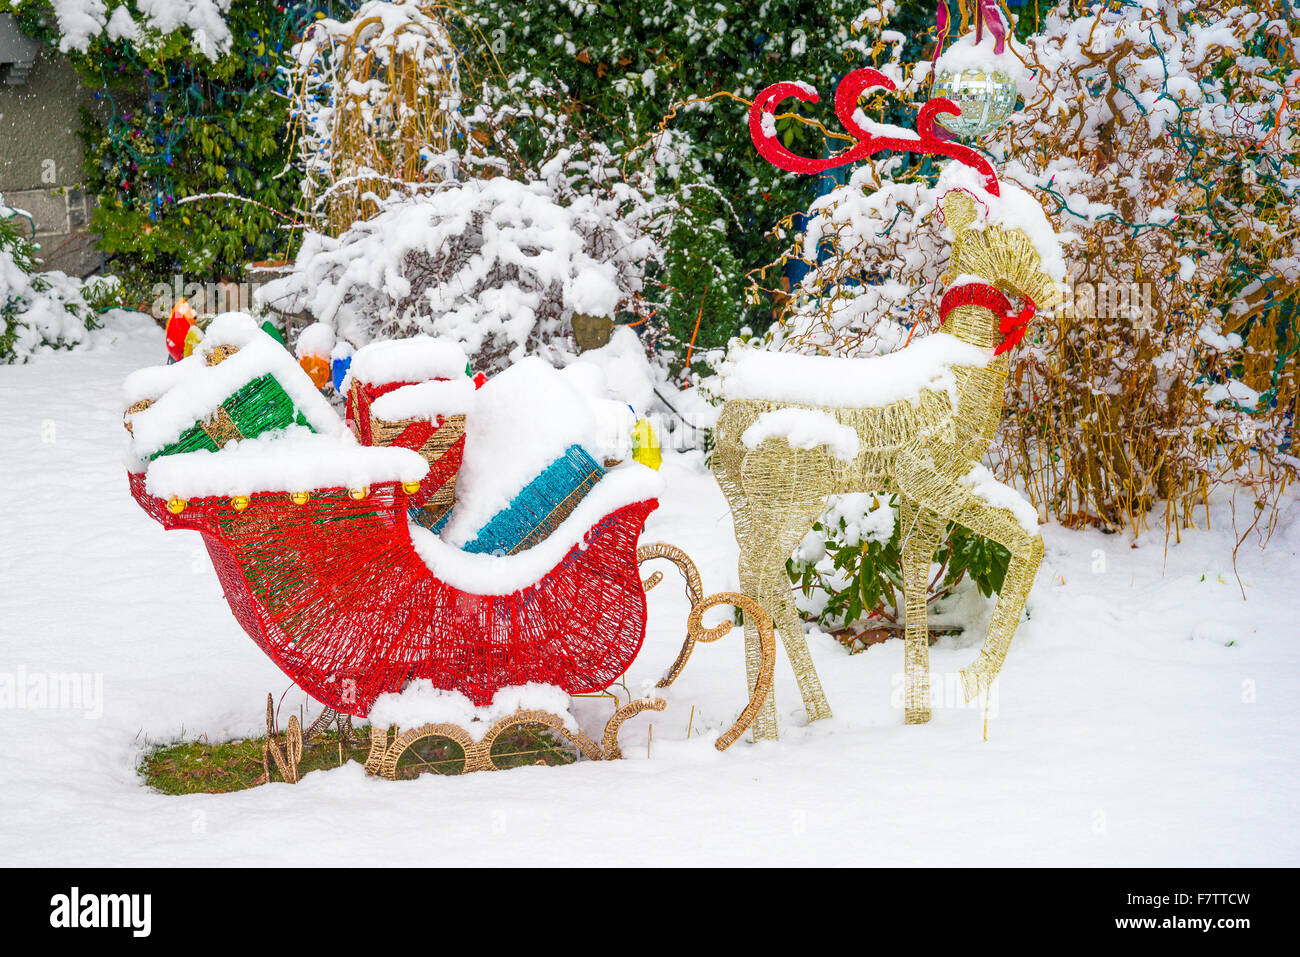 Outdoor Christmas Sleigh.Reindeer And Sleigh With Presents Outdoor Christmas